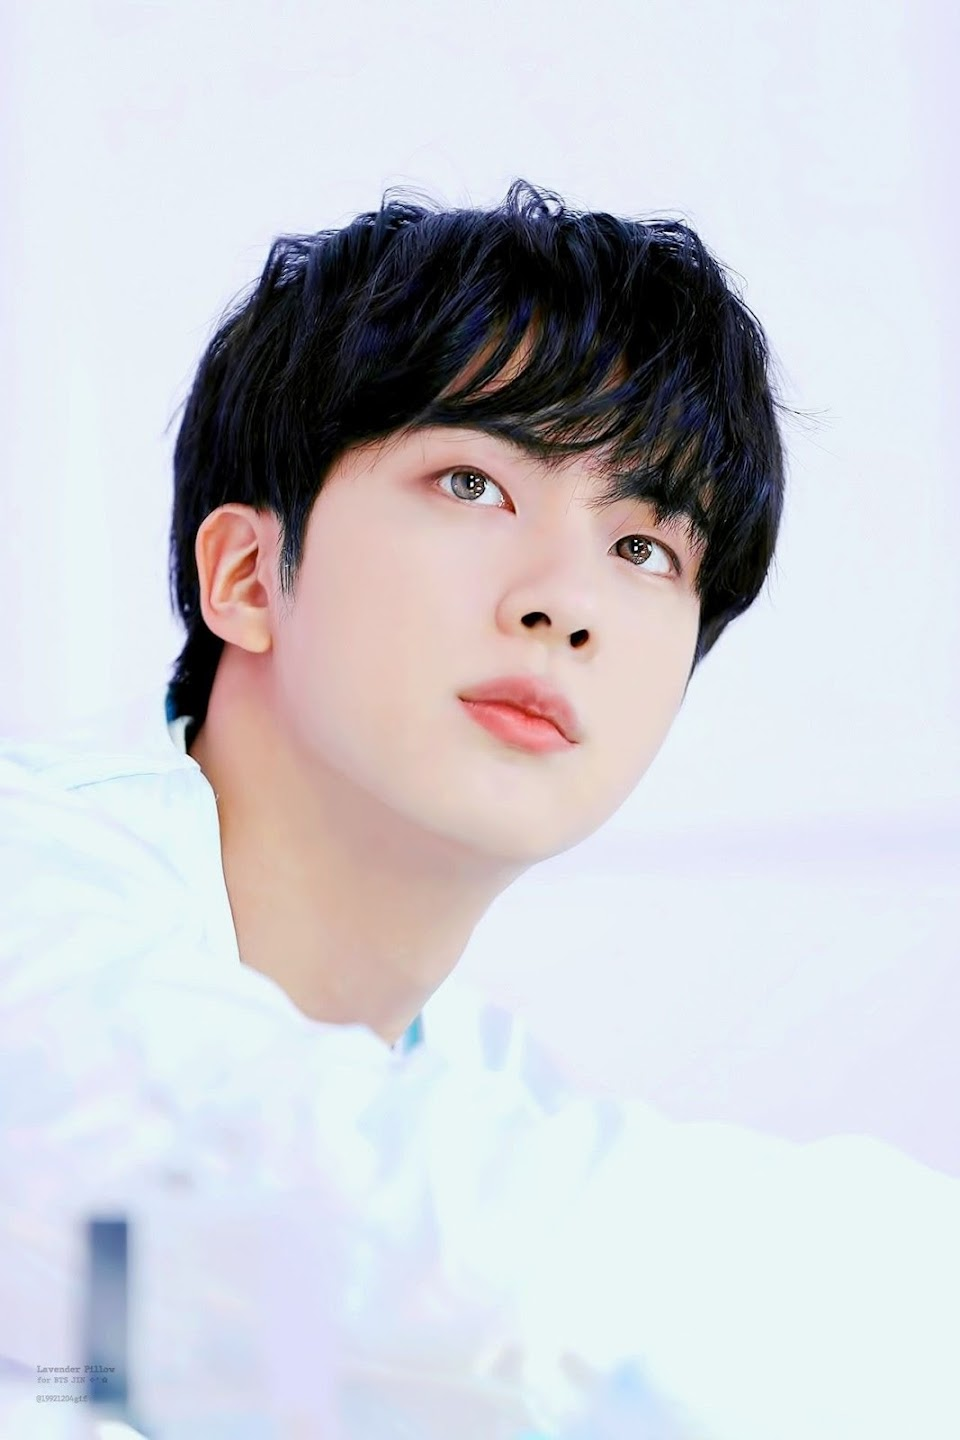 BTS's Jin Proves He's Worldwide Handsome As He Ranks No. 20 For ...